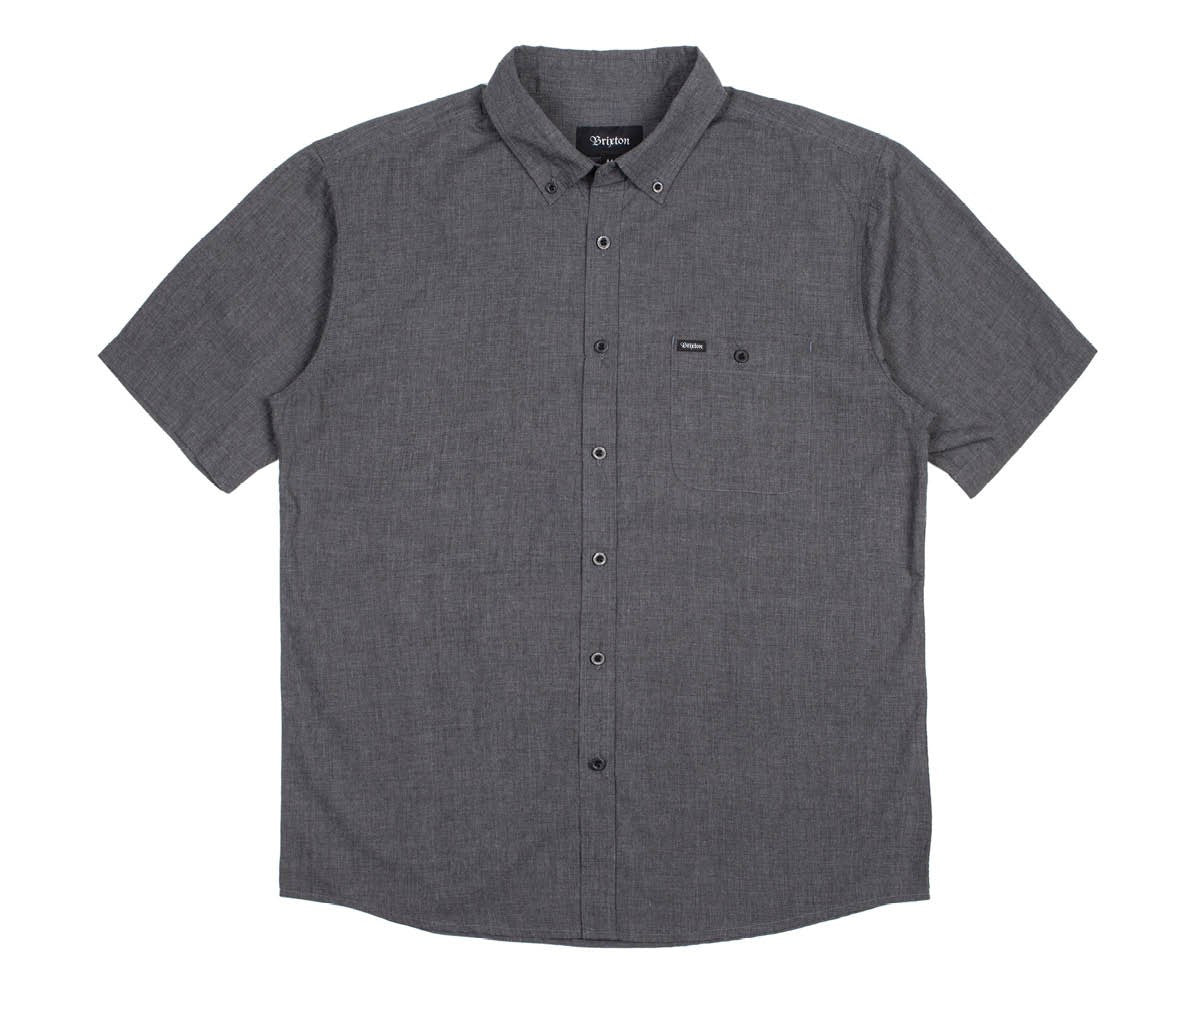 Brixton - Central Men's S/S Woven Shirt, Heather Black - The Giant Peach